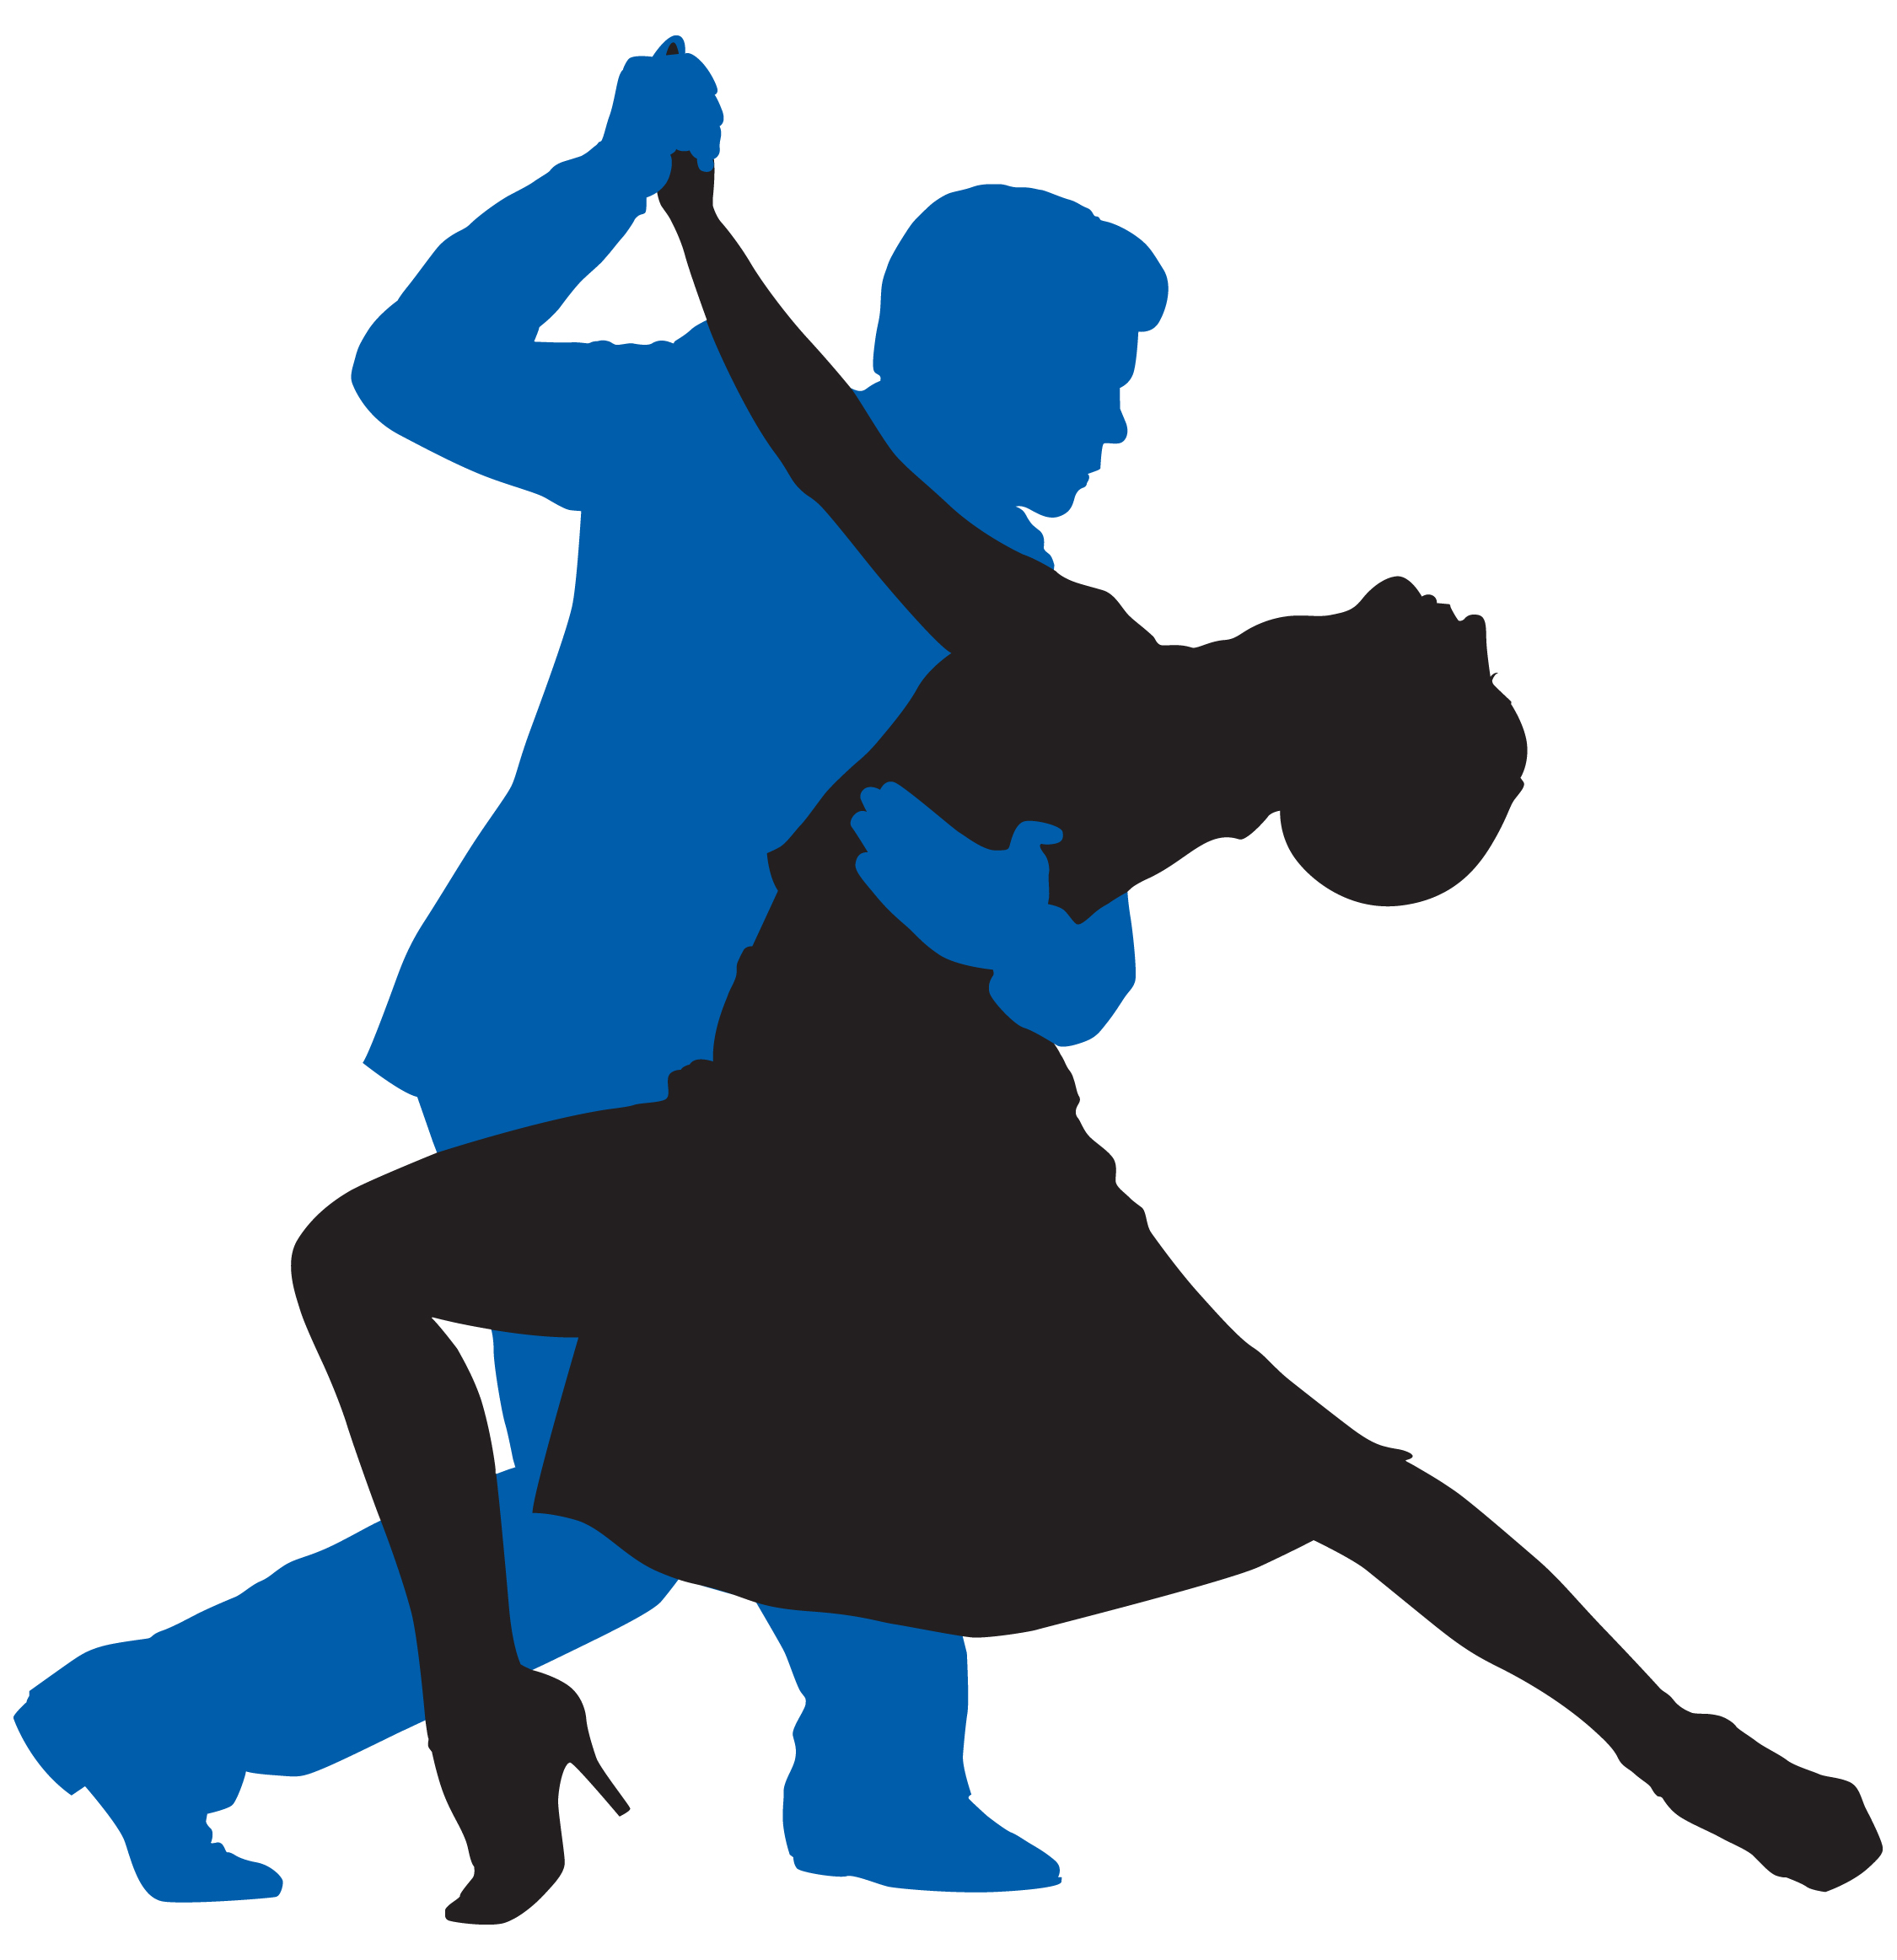 Yay clipart dance. Dancing silhouette image at